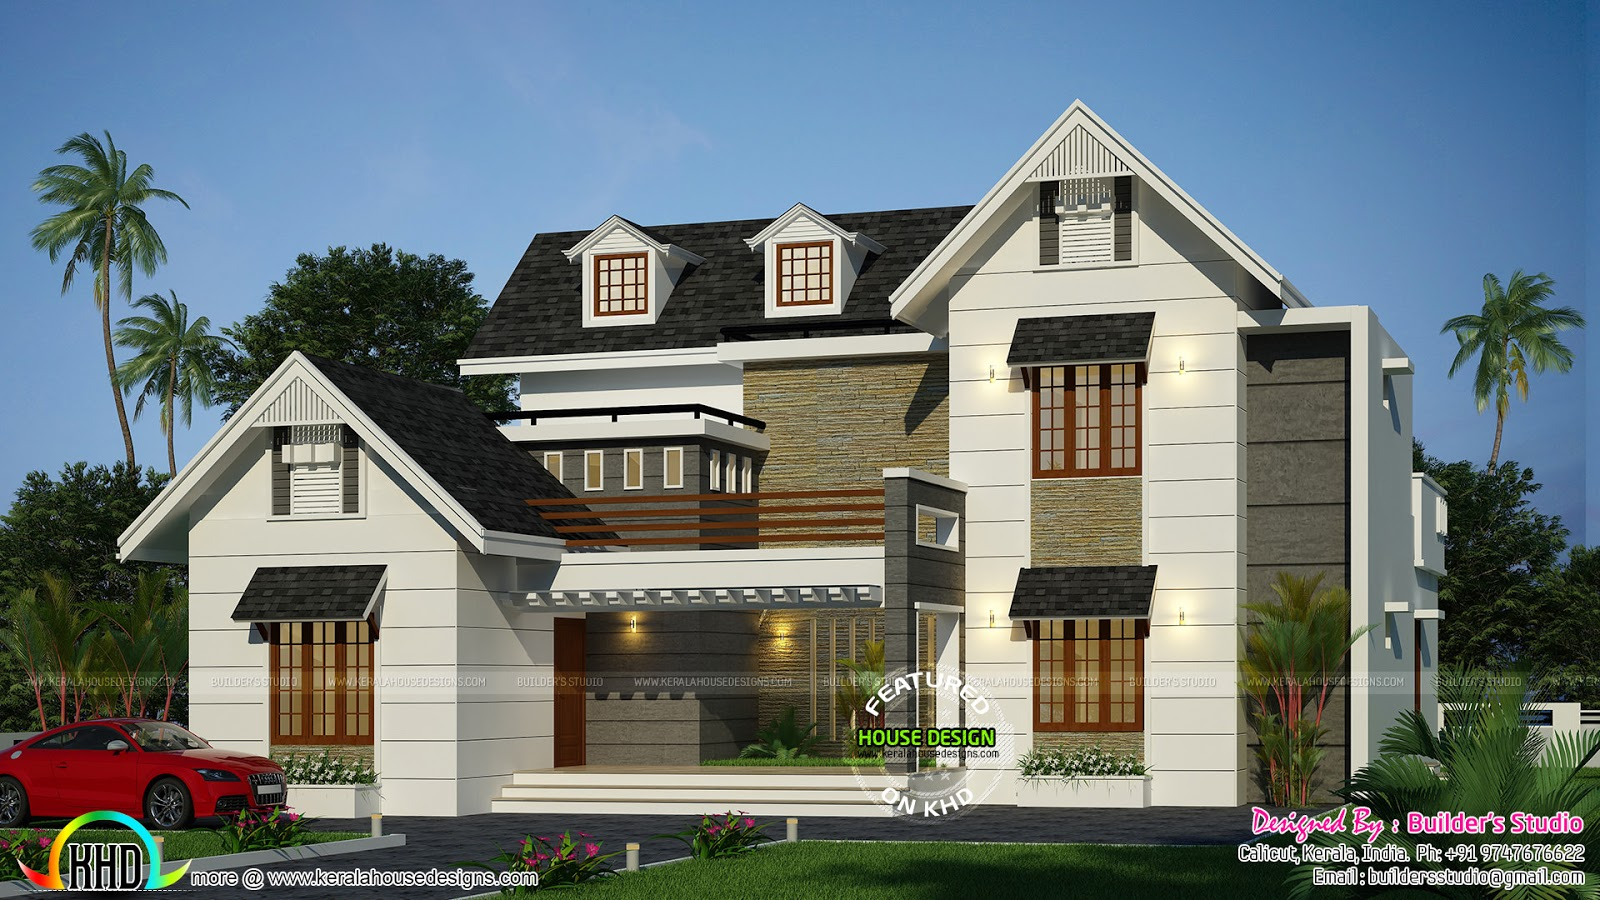 Modern Dormer Window Home Architecture Kerala Home